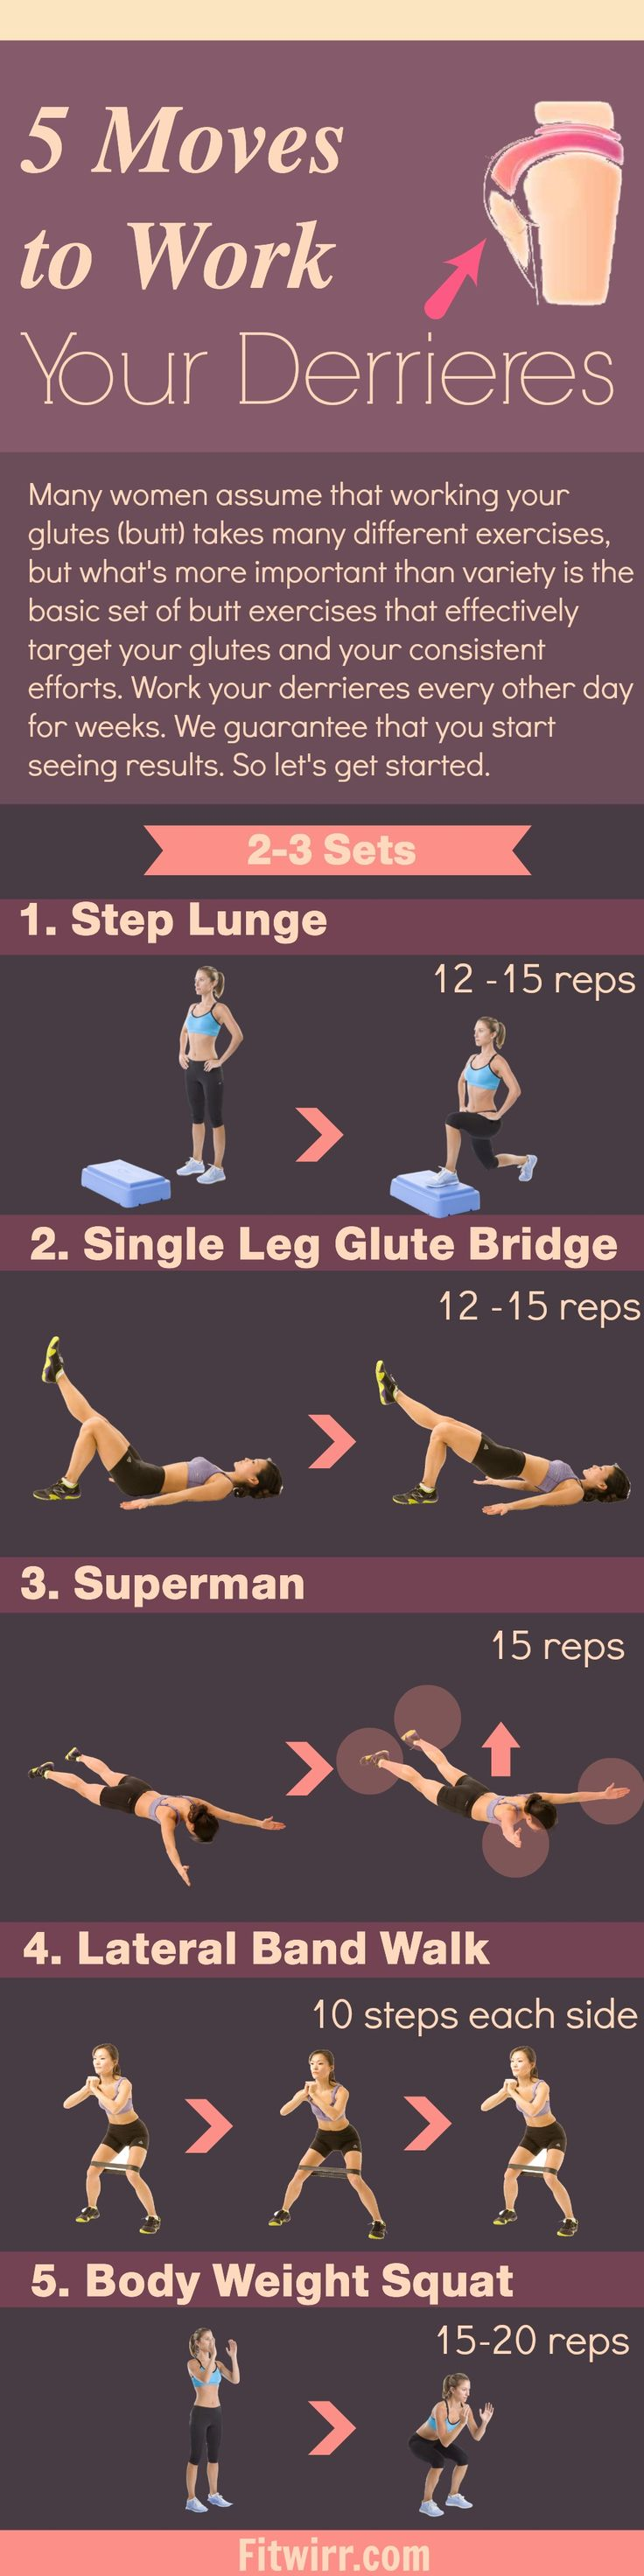 5 Glute Workouts to Work Your Derrieres: It only takes a set of simple butt moves to create your perfect backside. Squat, Lunge, Glute Bridge, and more.